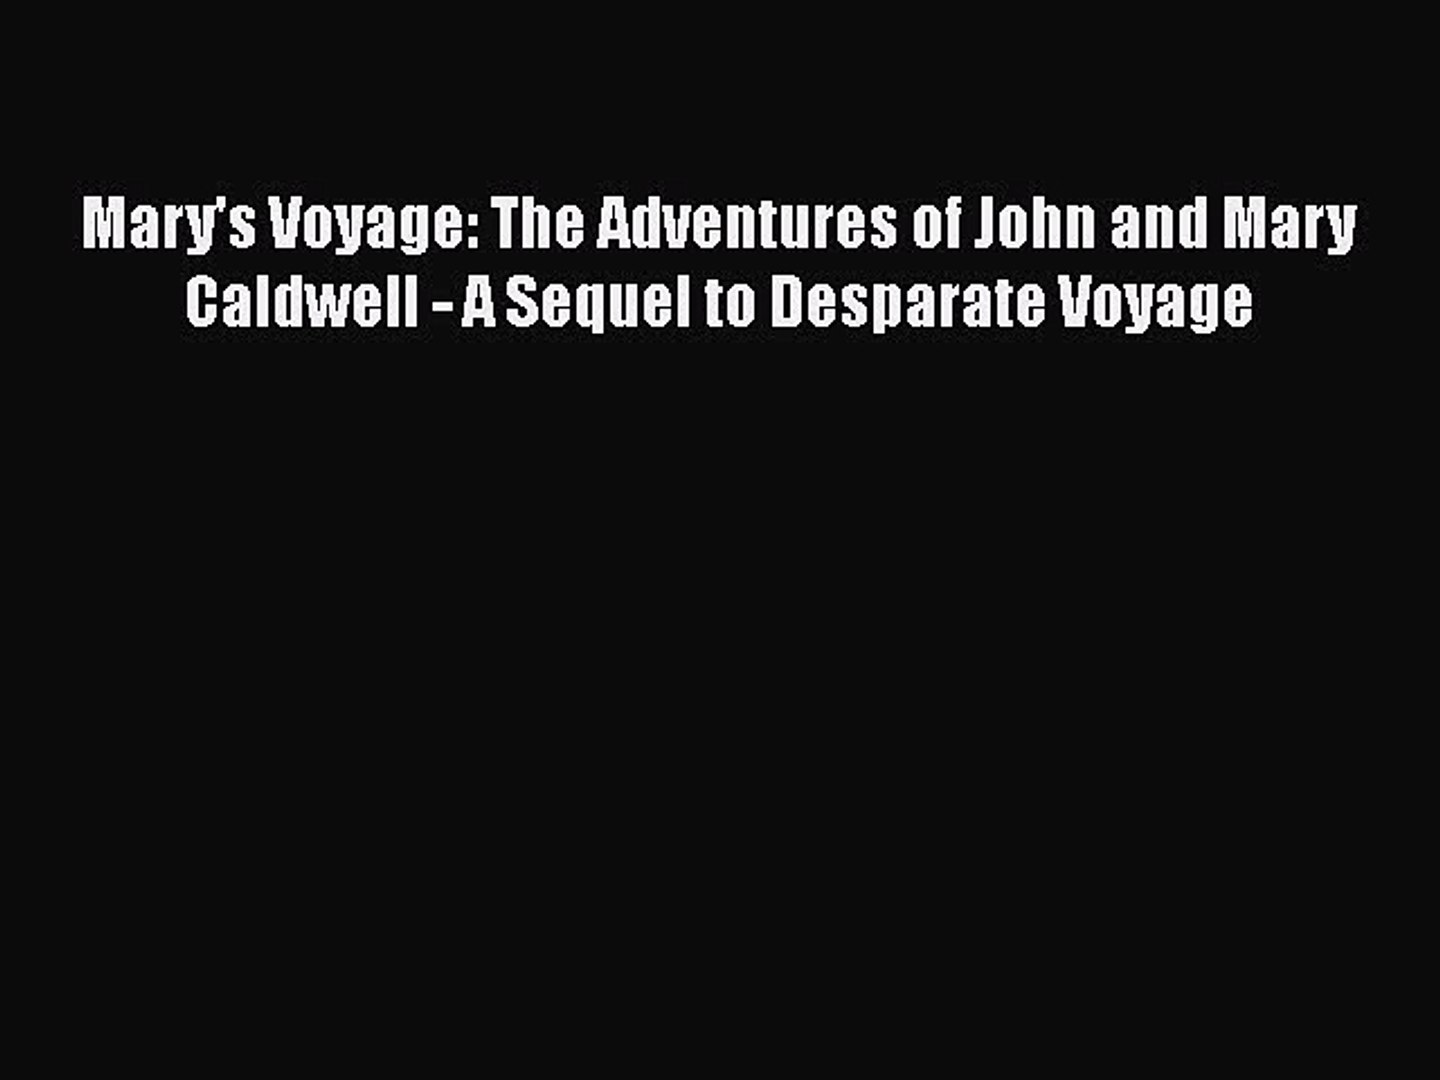 PDF Mary's Voyage: The Adventures of John and Mary Caldwell - A Sequel to Desparate Voyage